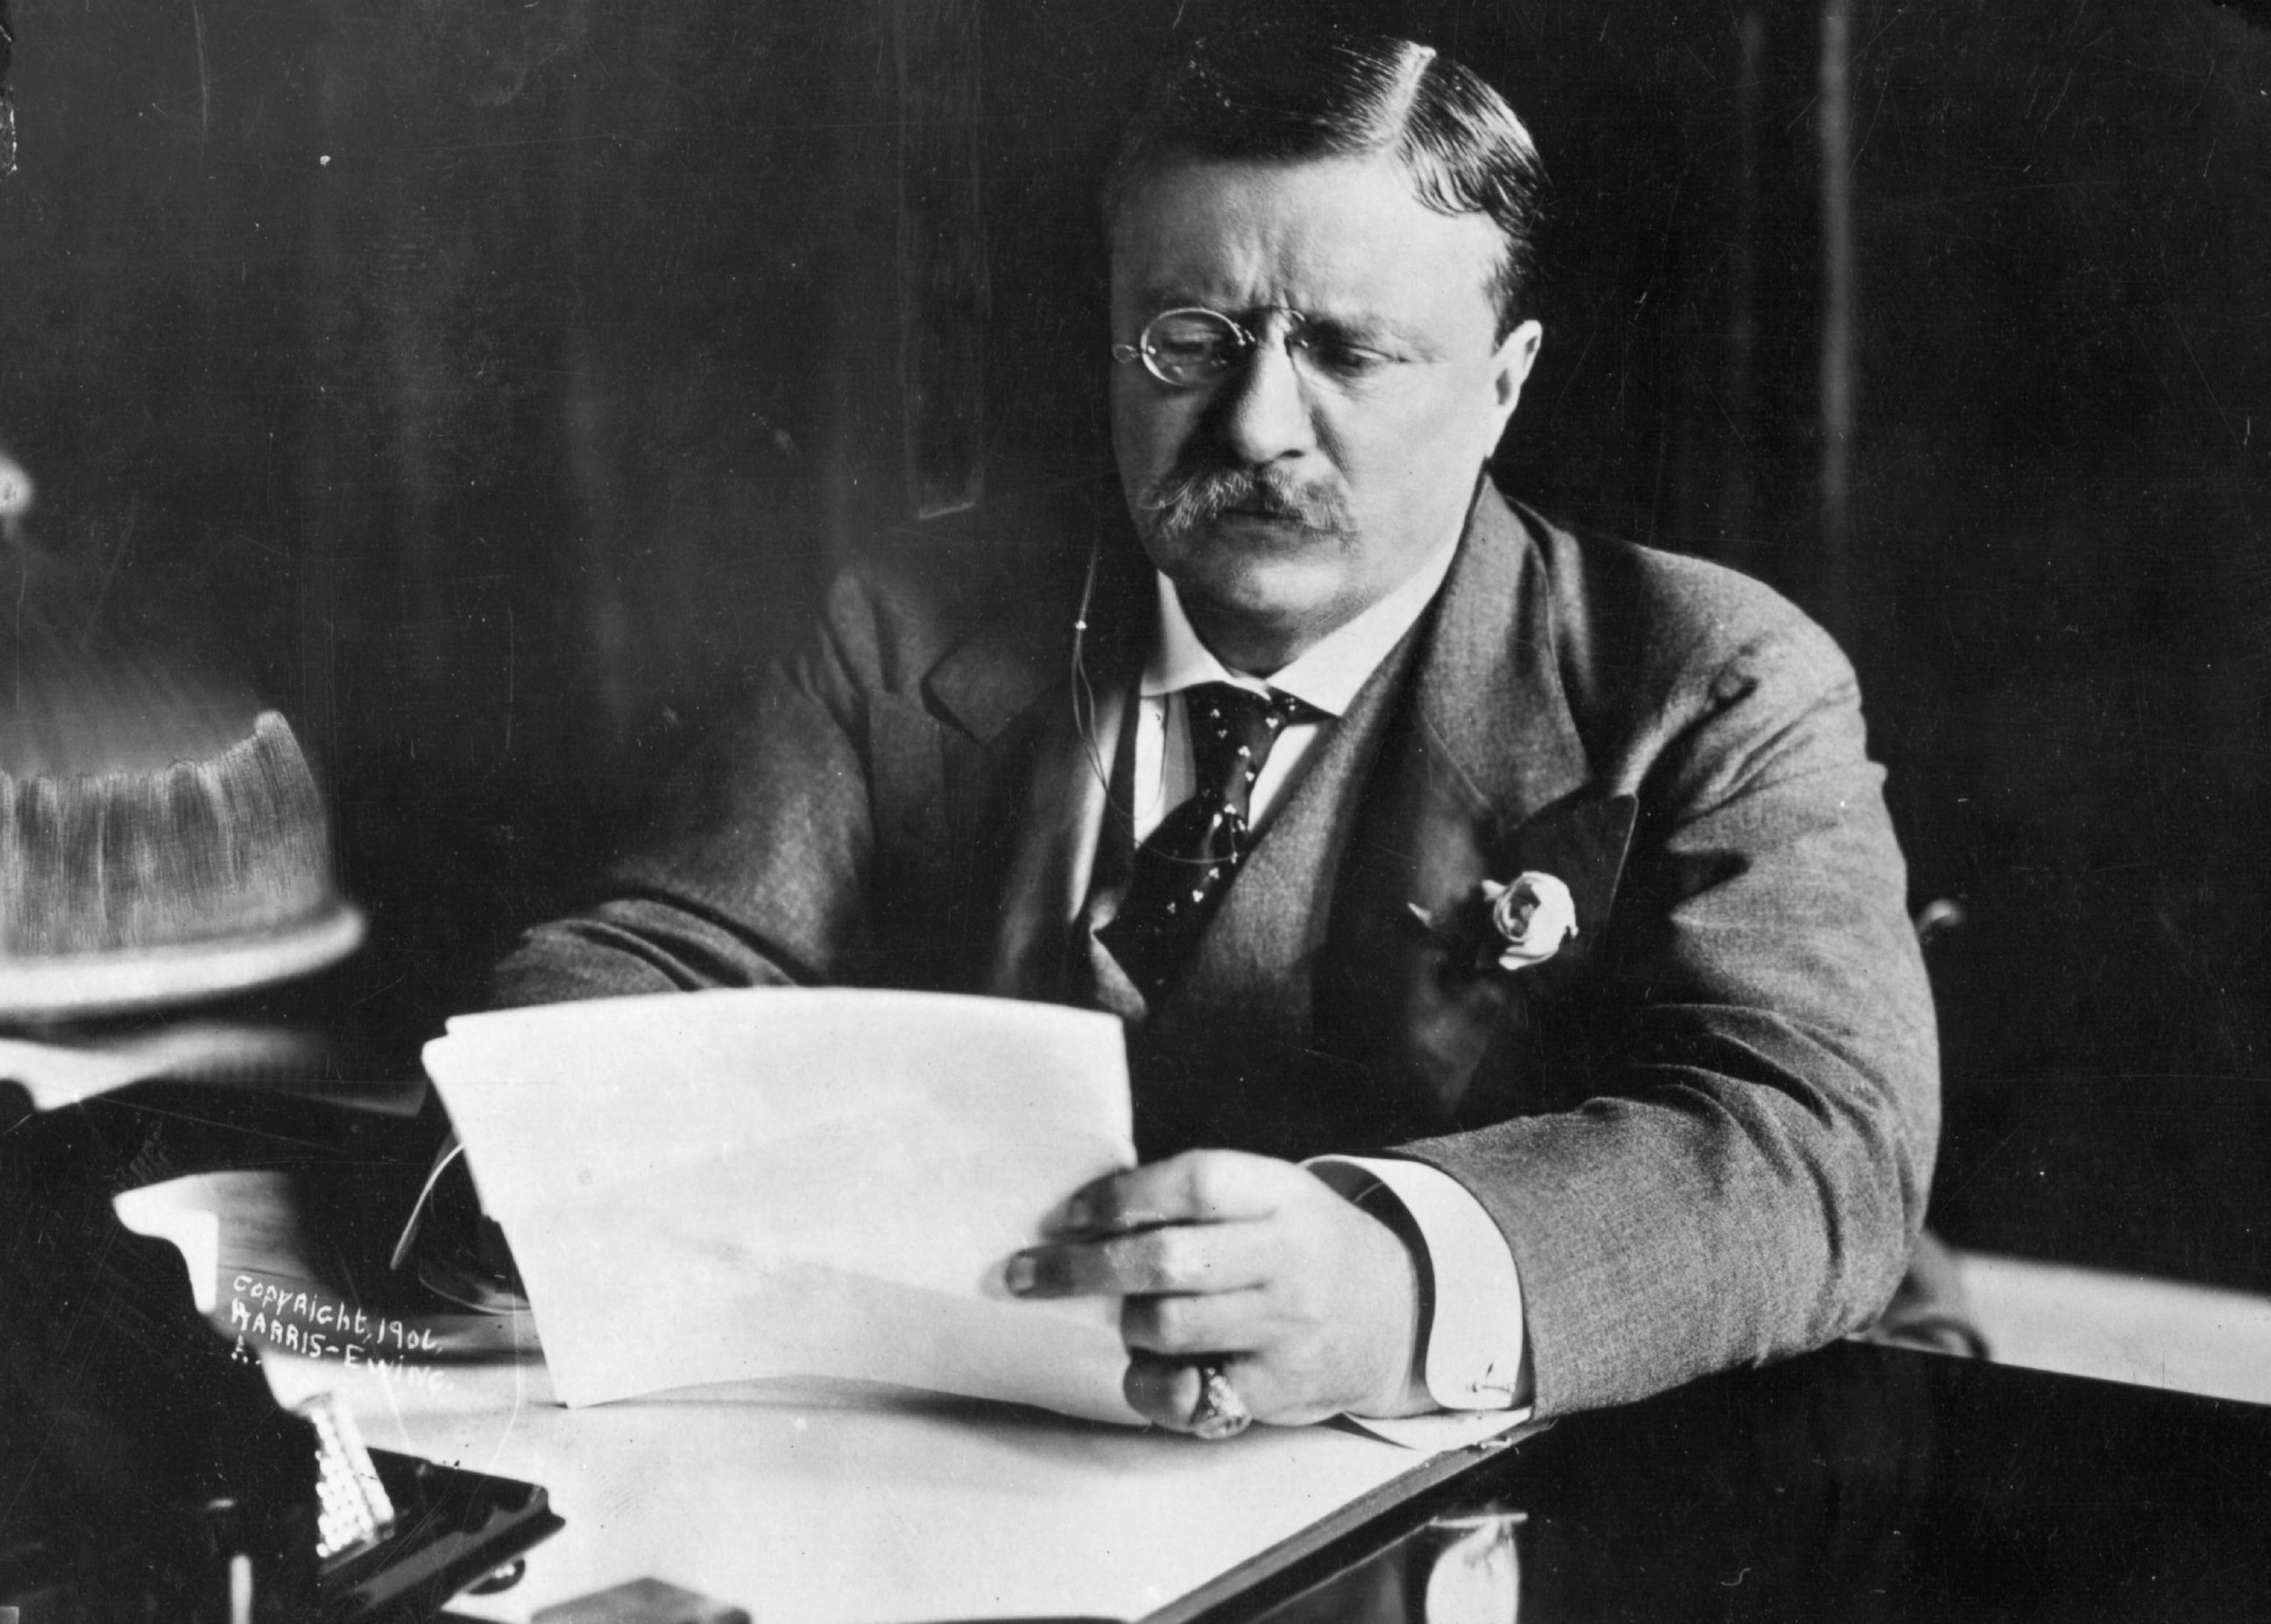 President Theodore Roosevelt received the Nobel Peace Prize in 1906 for having negotiated peace in the Russo-Japanese war in 1904-5.